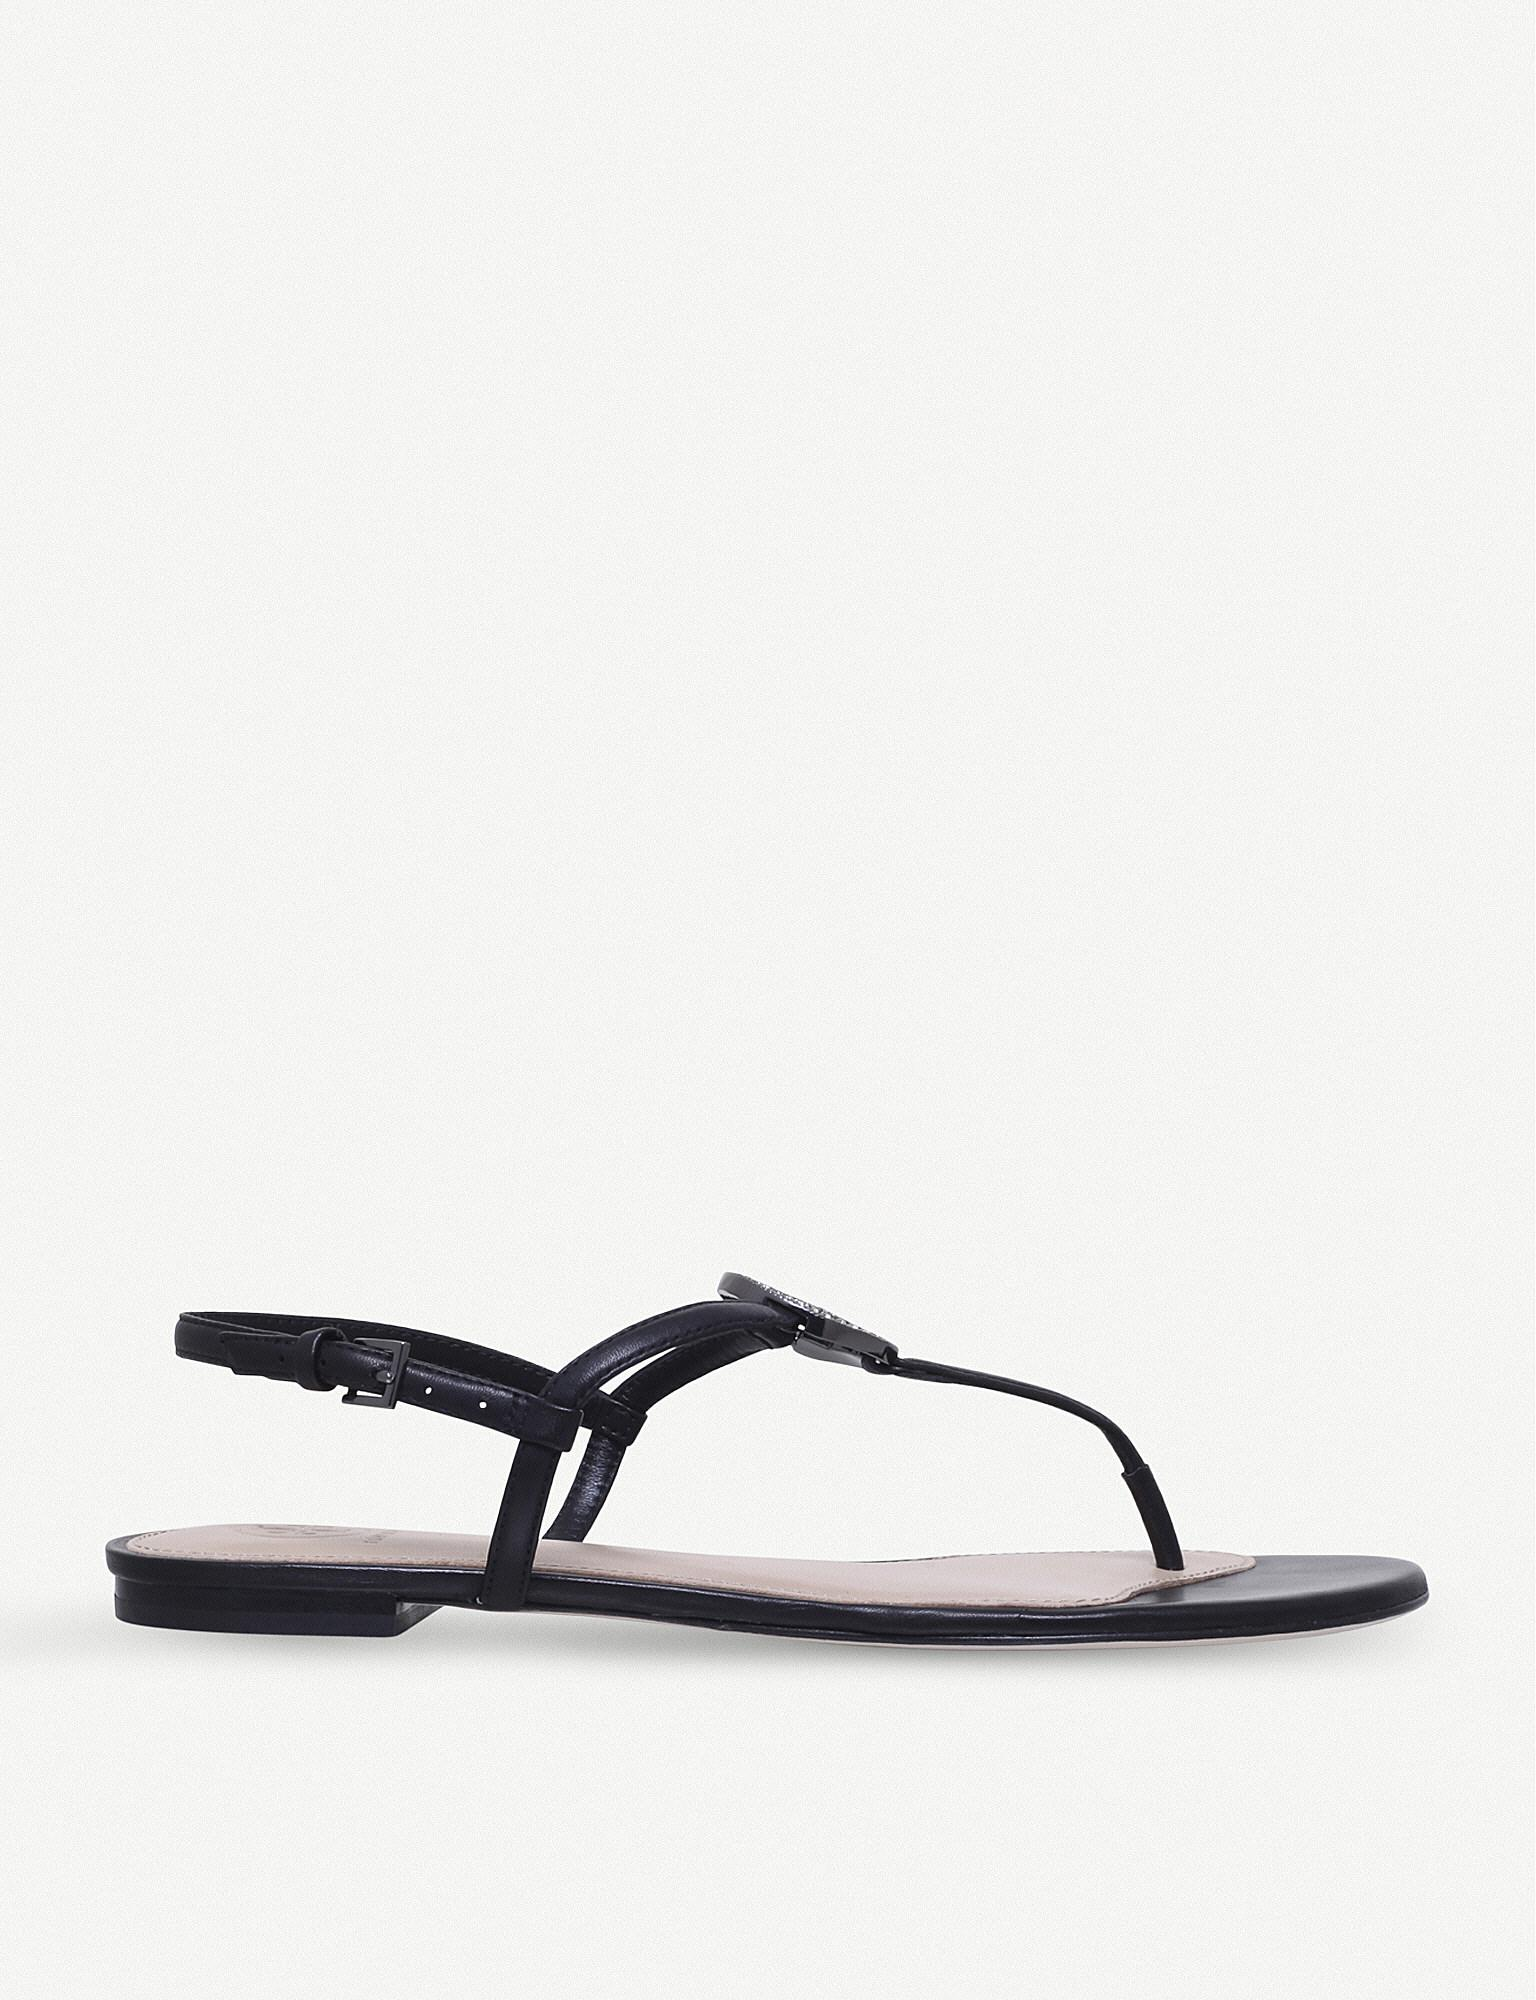 Tory Burch Liana Leather Sandals